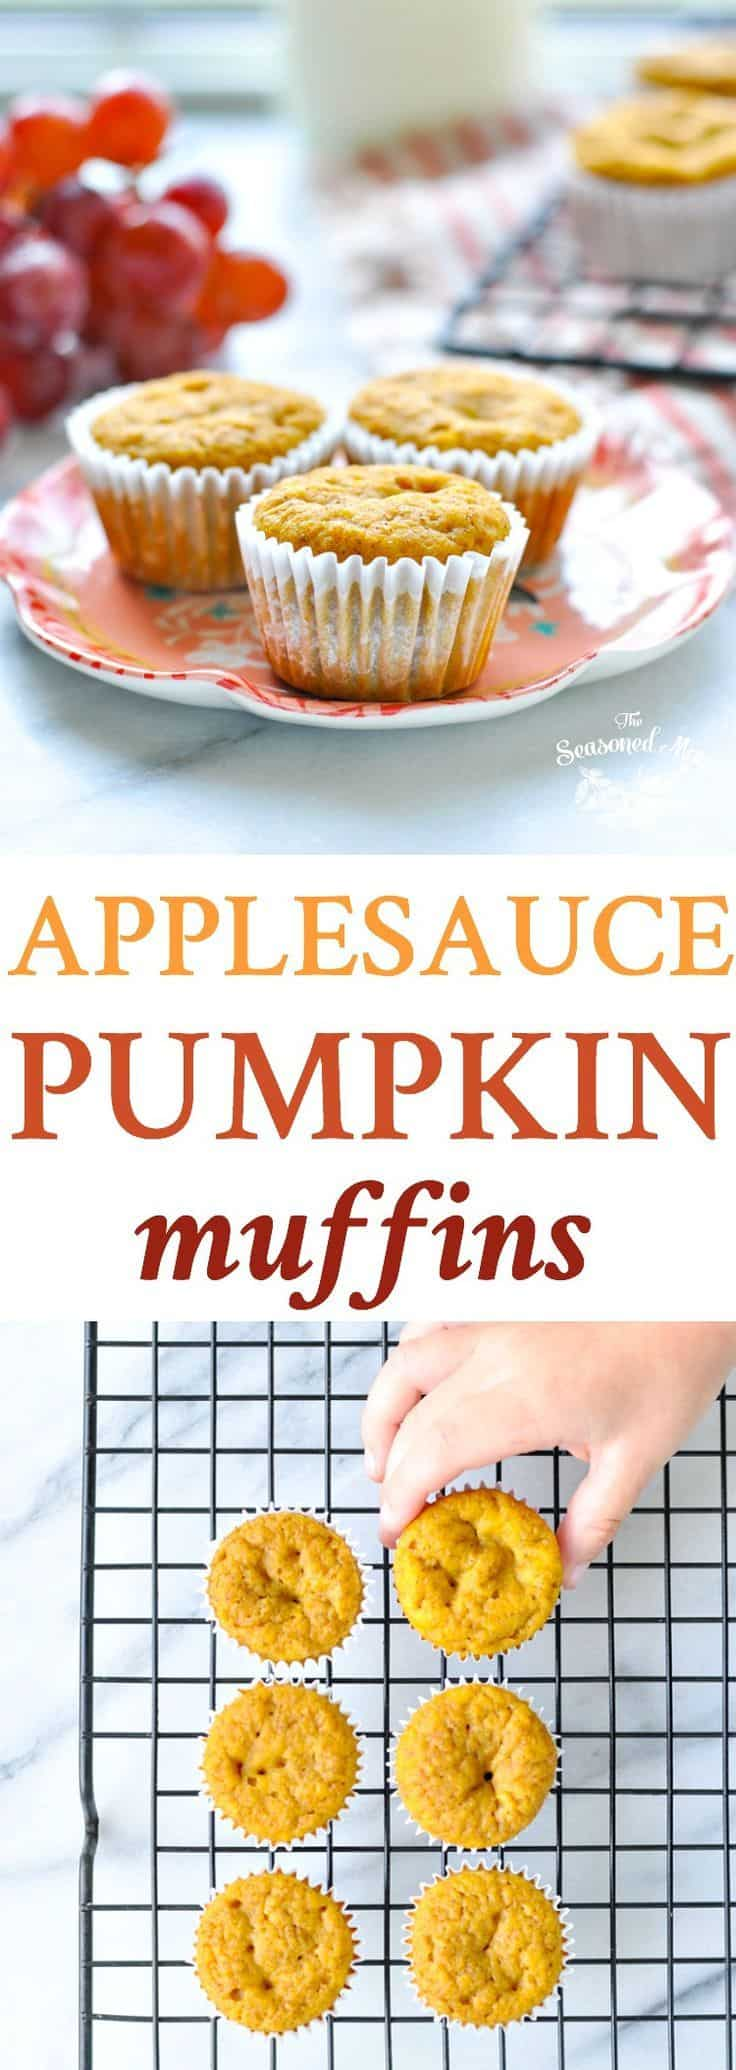 Apple sauce pumpkin muffins